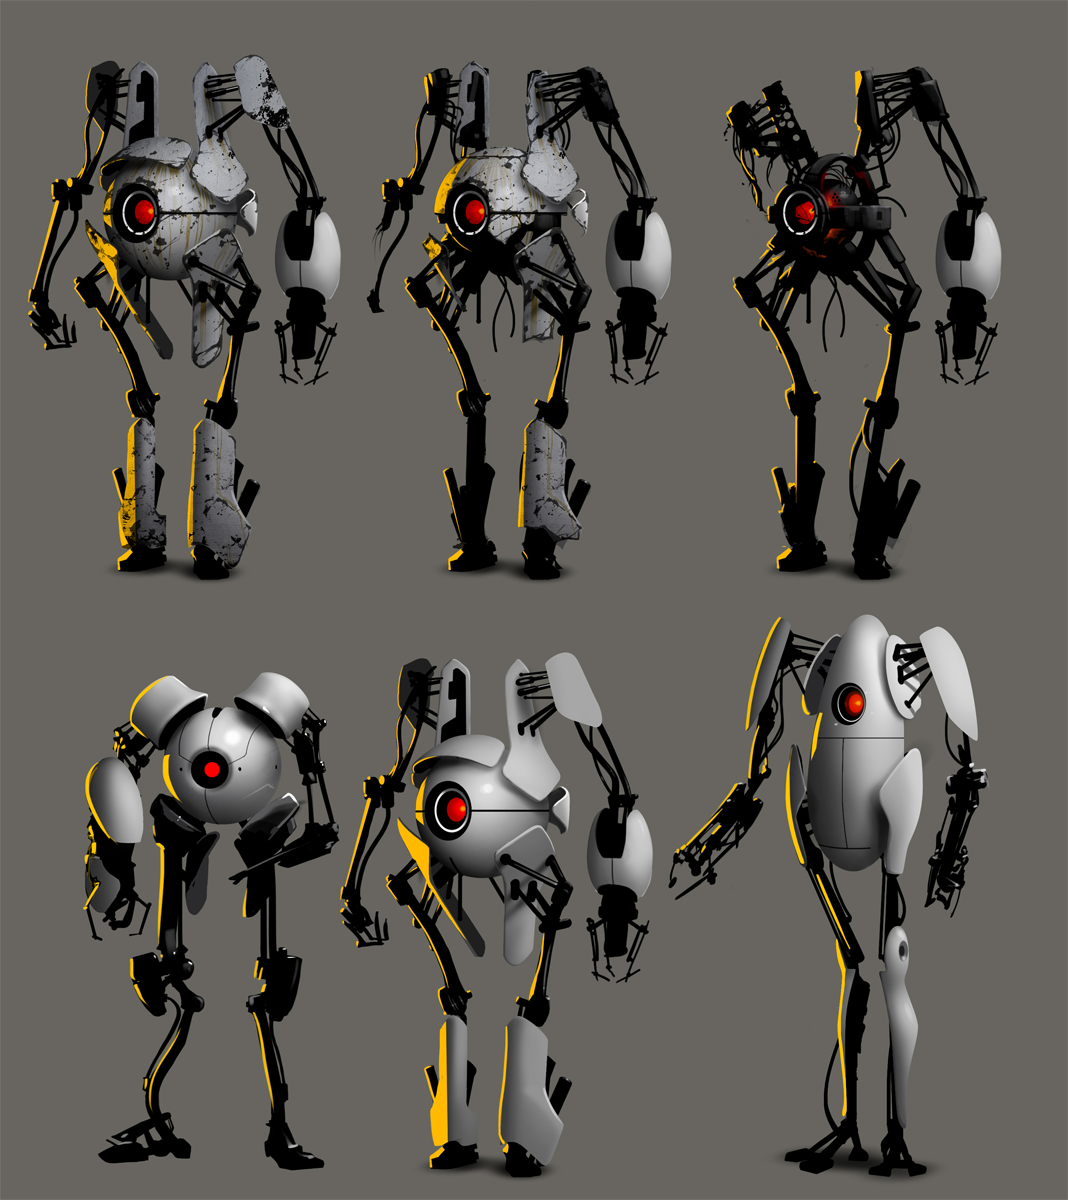 21662 Portal 2 Atlas P Body Concept Art In 2019 Robot